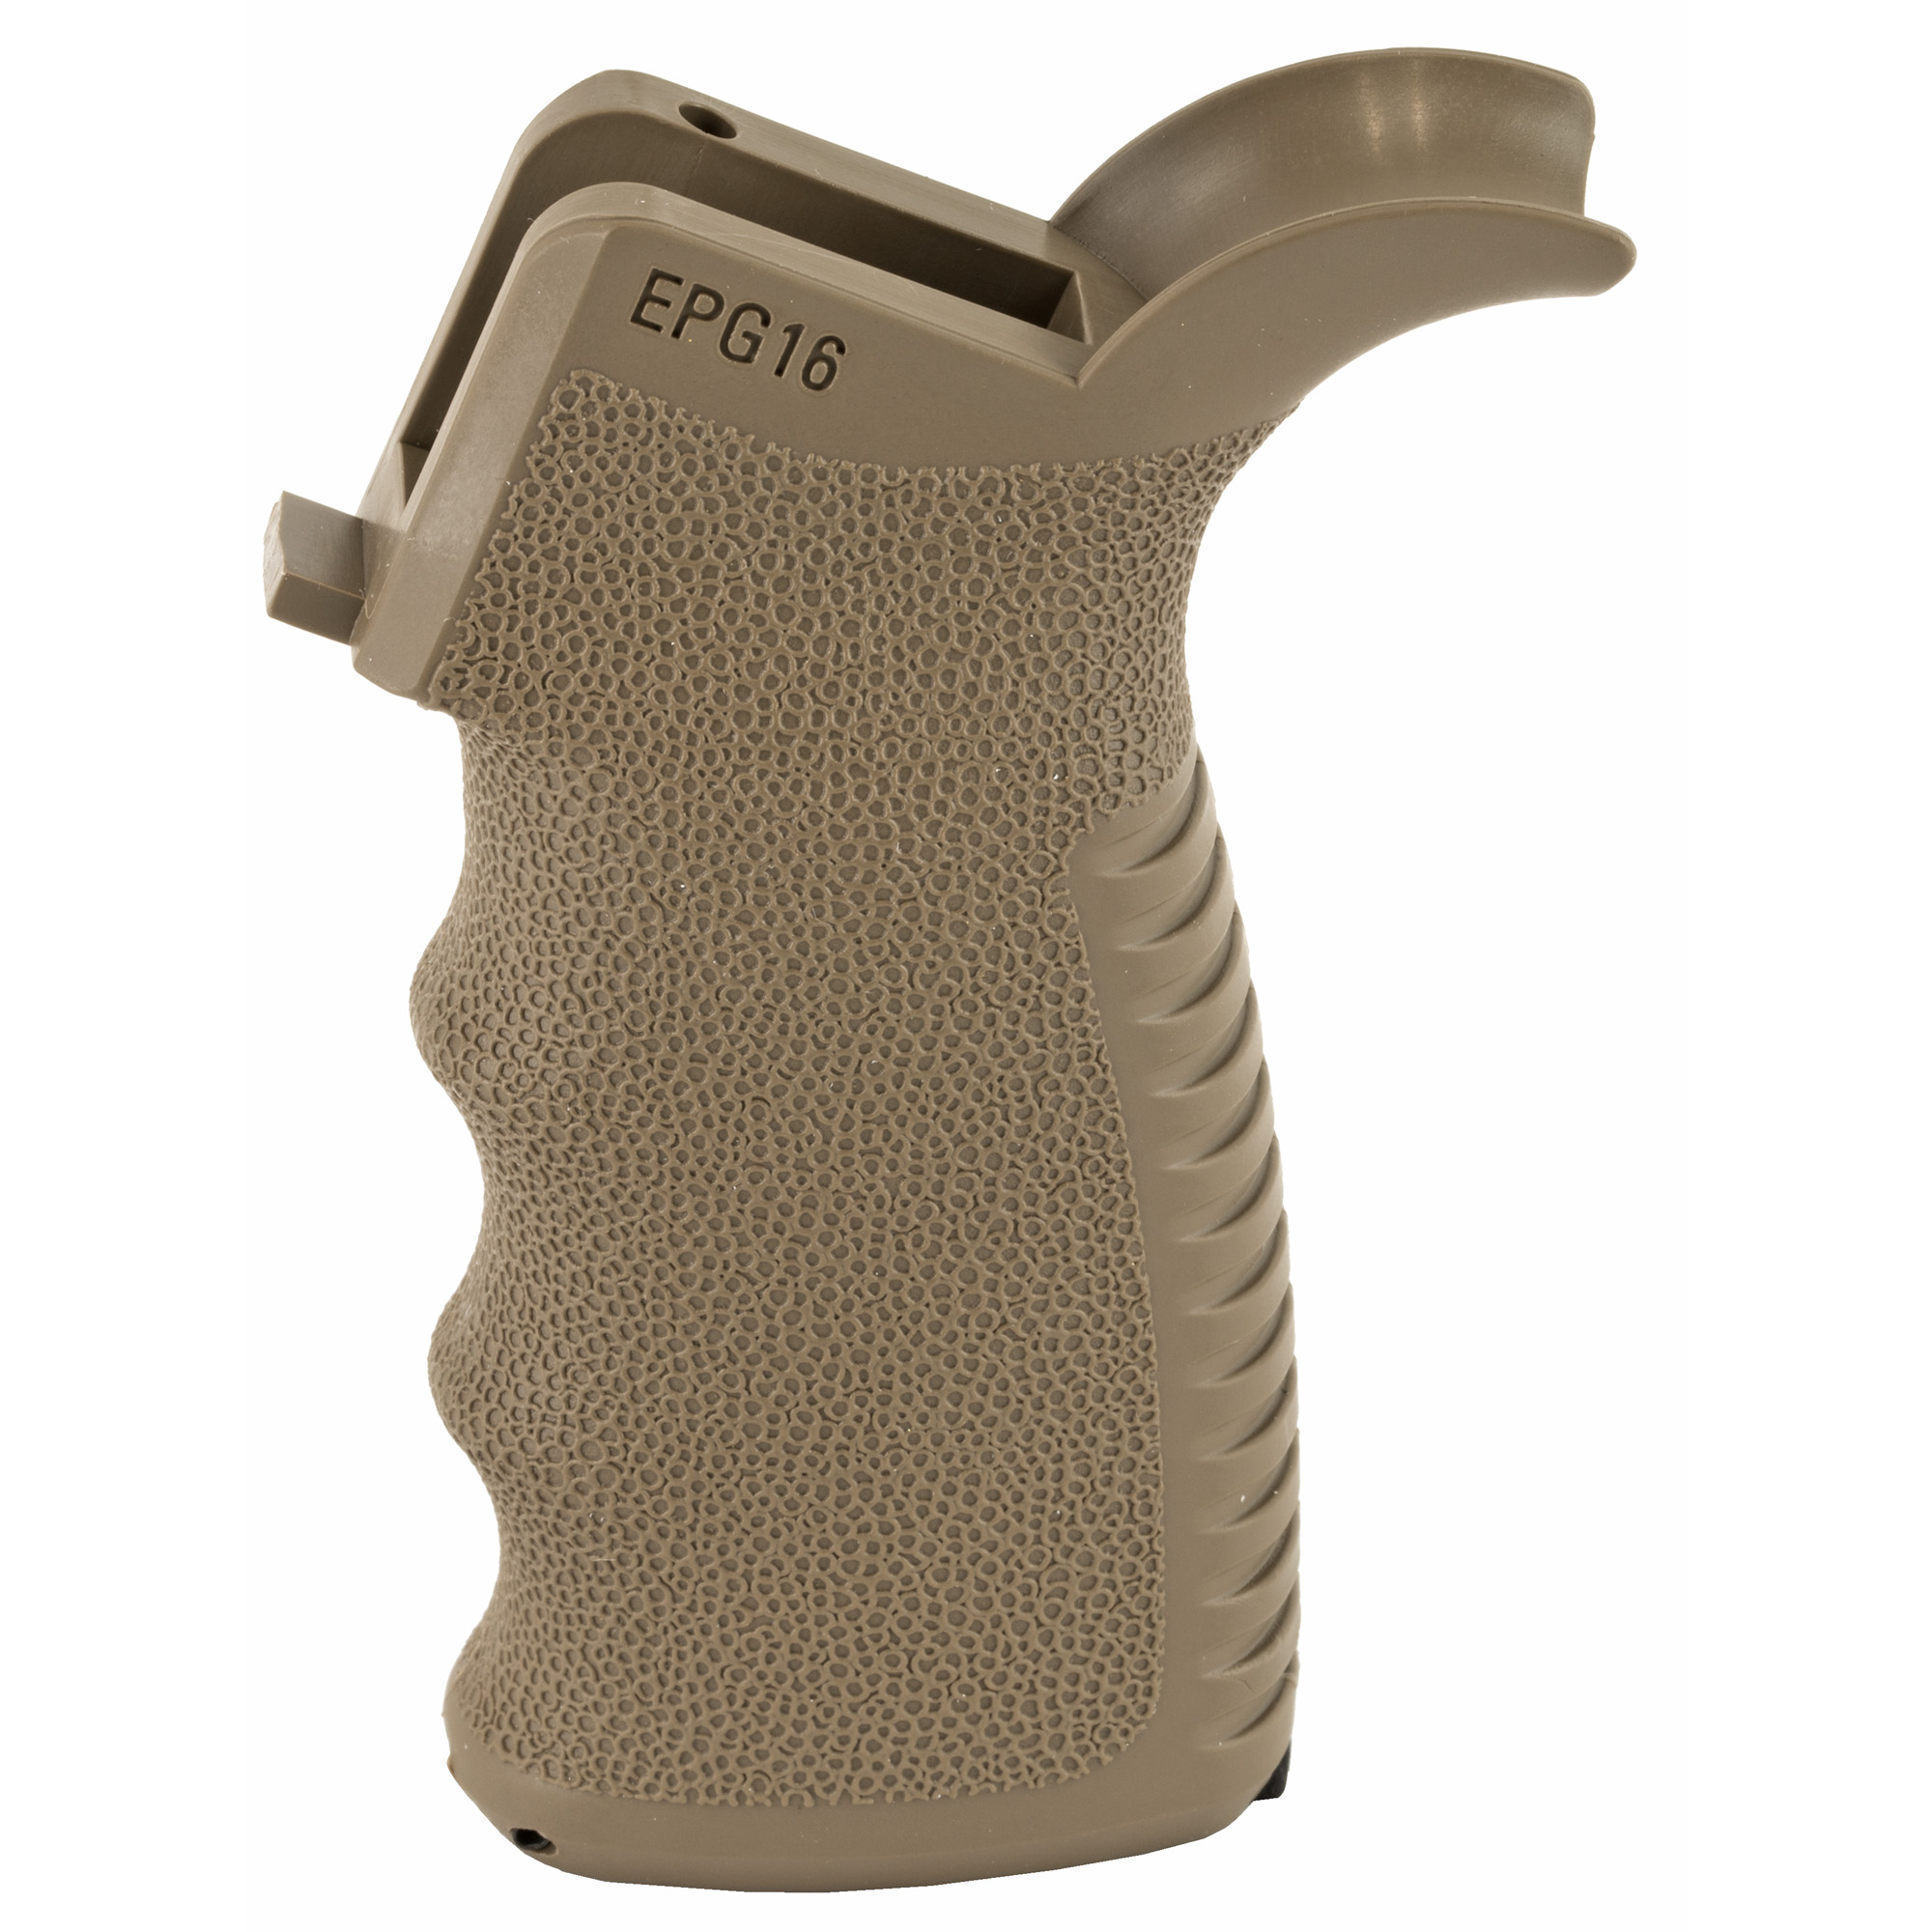 The Engage AR15/M16 pistol grip has textured finger swells and the grooved backstraps provide a positive grip surface with wet or gloved hands.